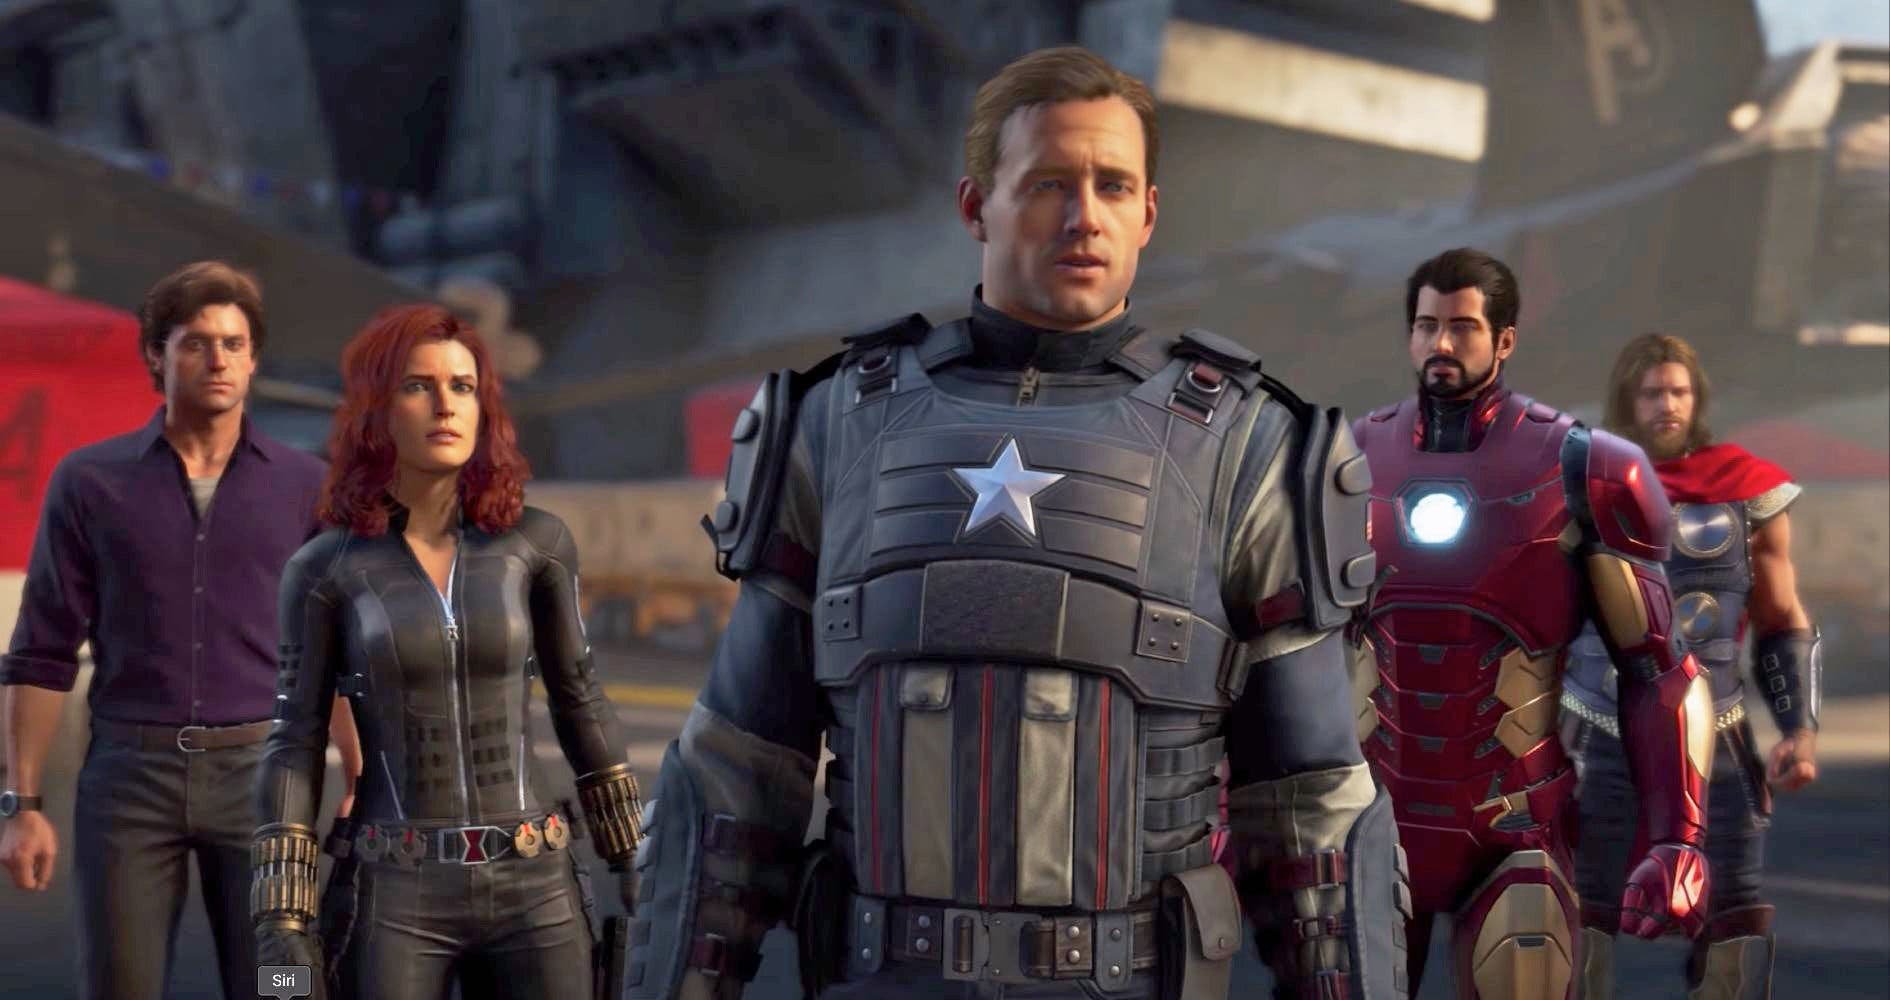 Comparan el gameplay de Marvel's Avengers para comprobar si hay downgrade 7